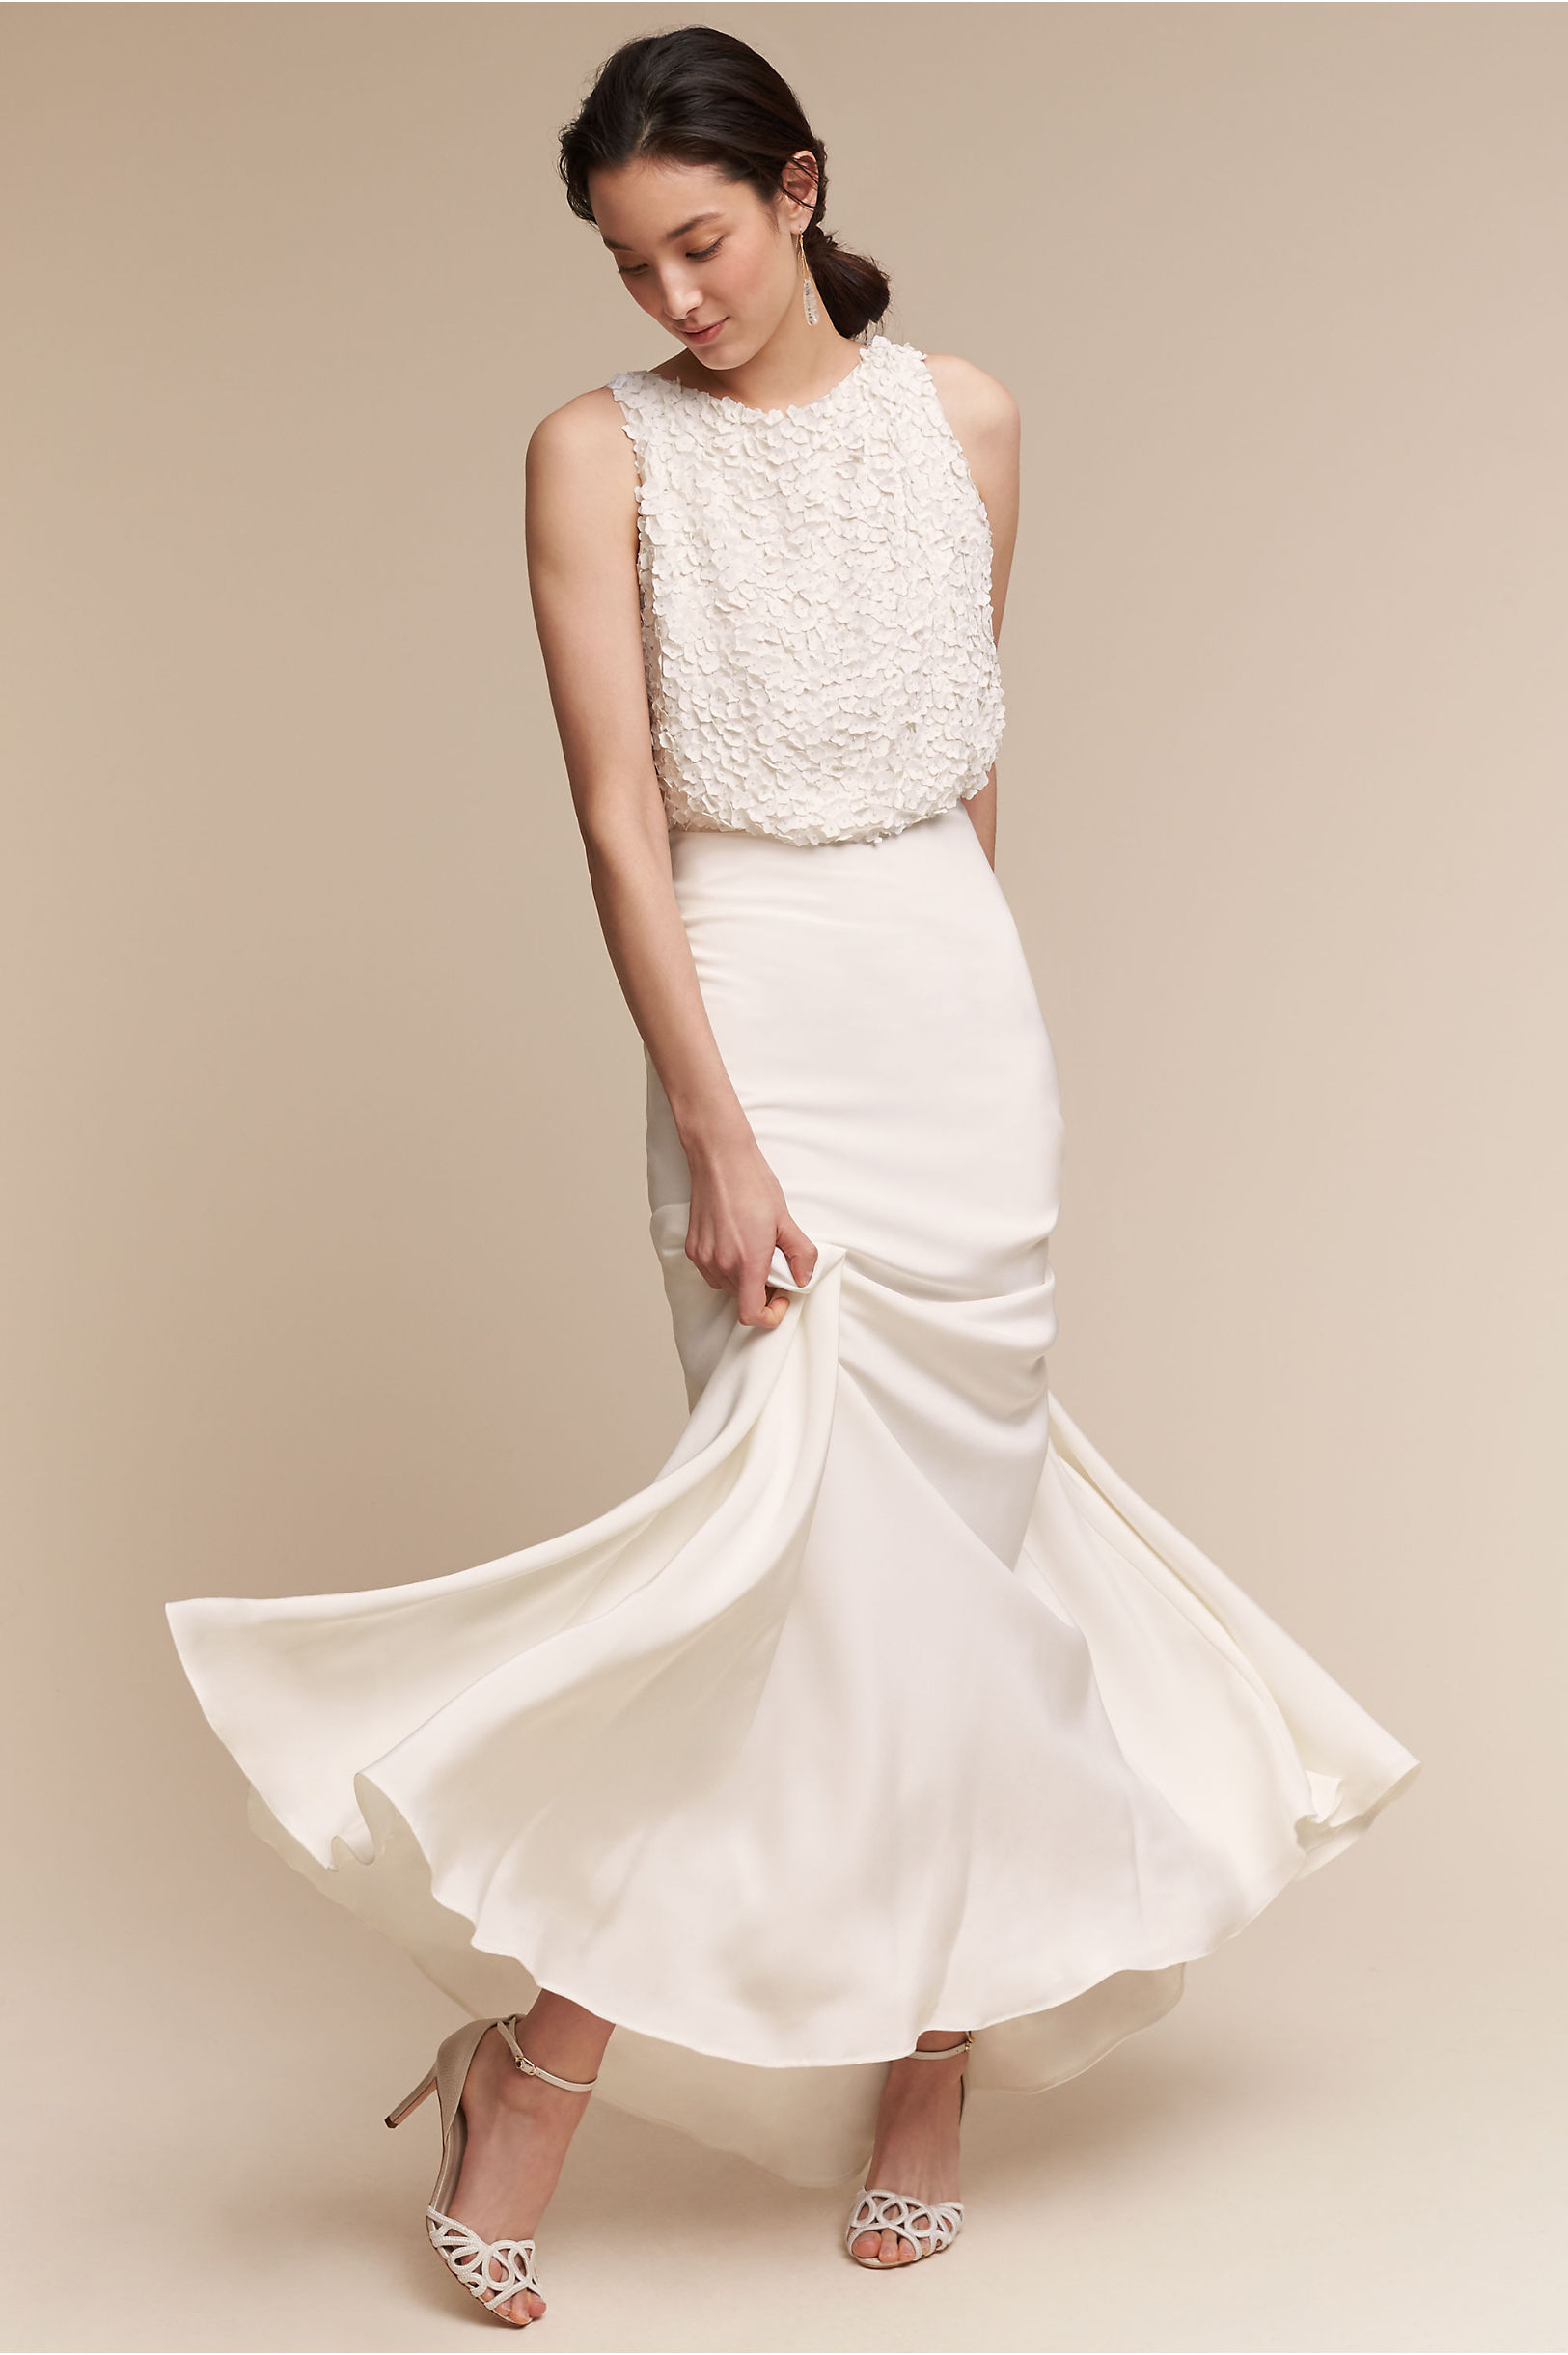 Sale Wedding Dresses | Shop On Sale Wedding Gowns | BHLDN